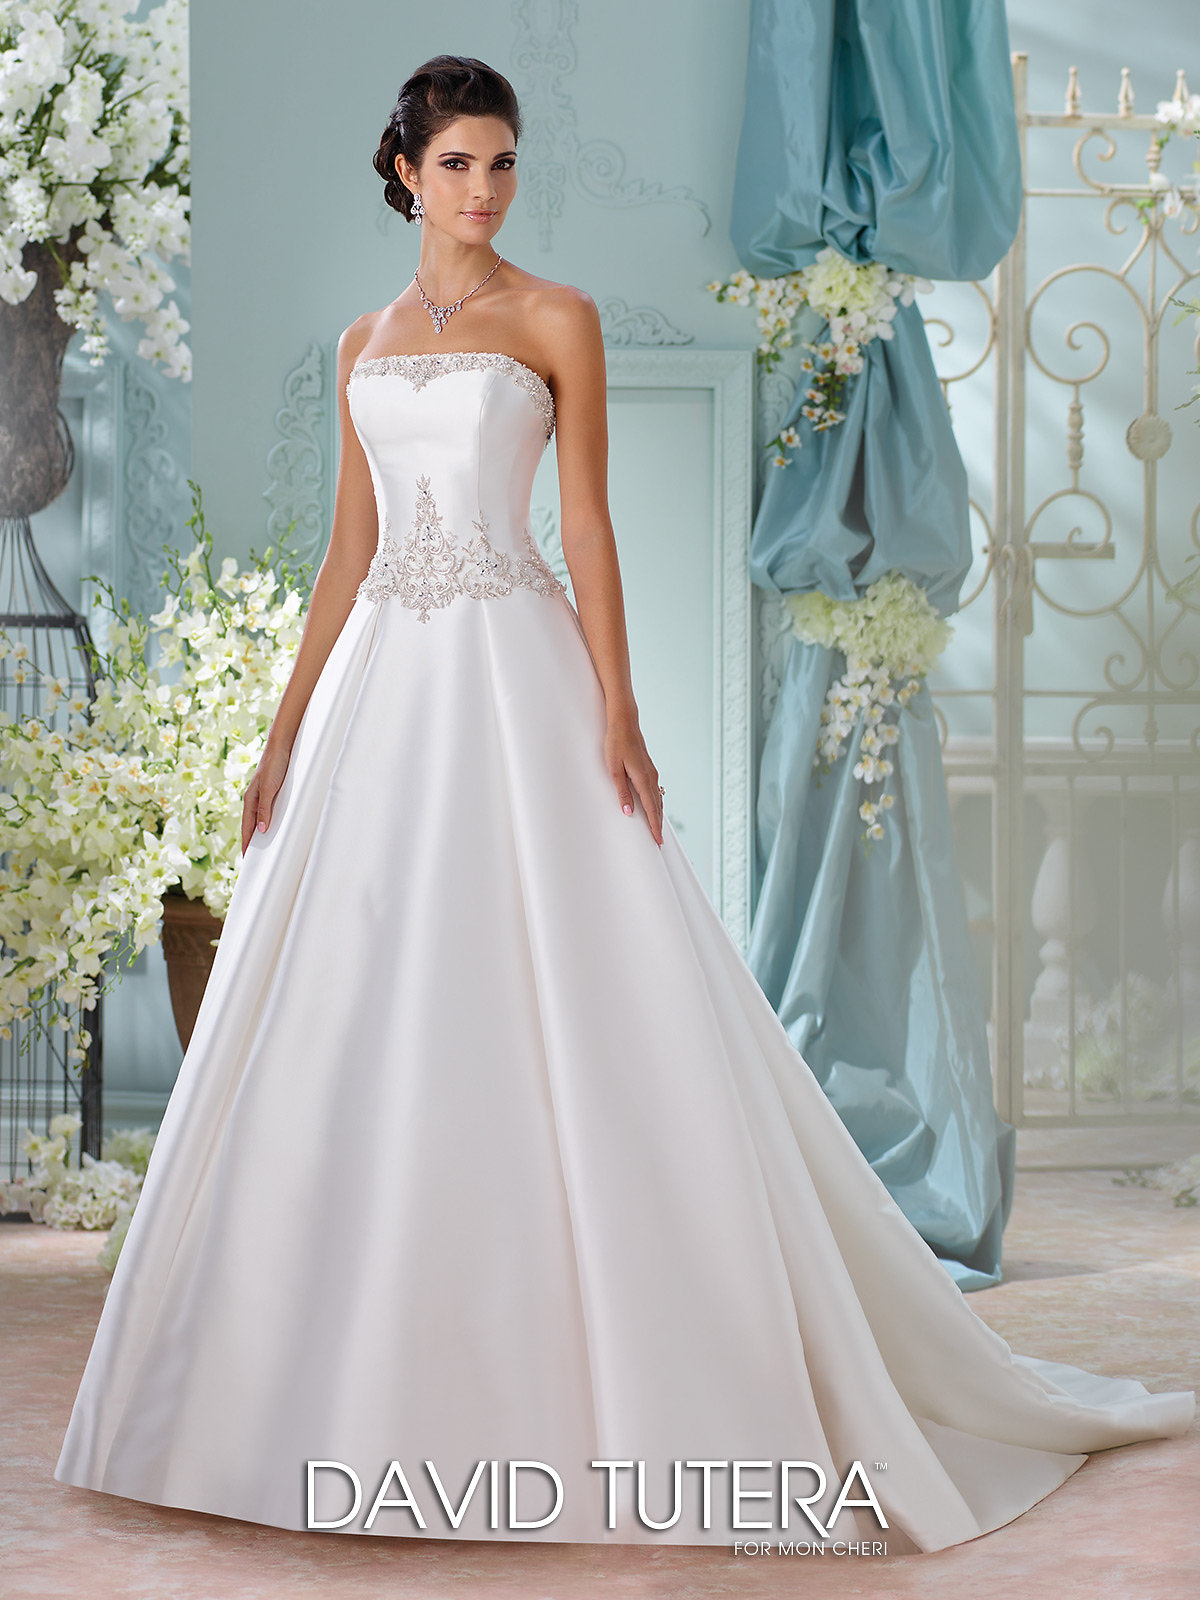 Outstanding Dallas Wedding Dresses Component - All Wedding Dresses ...